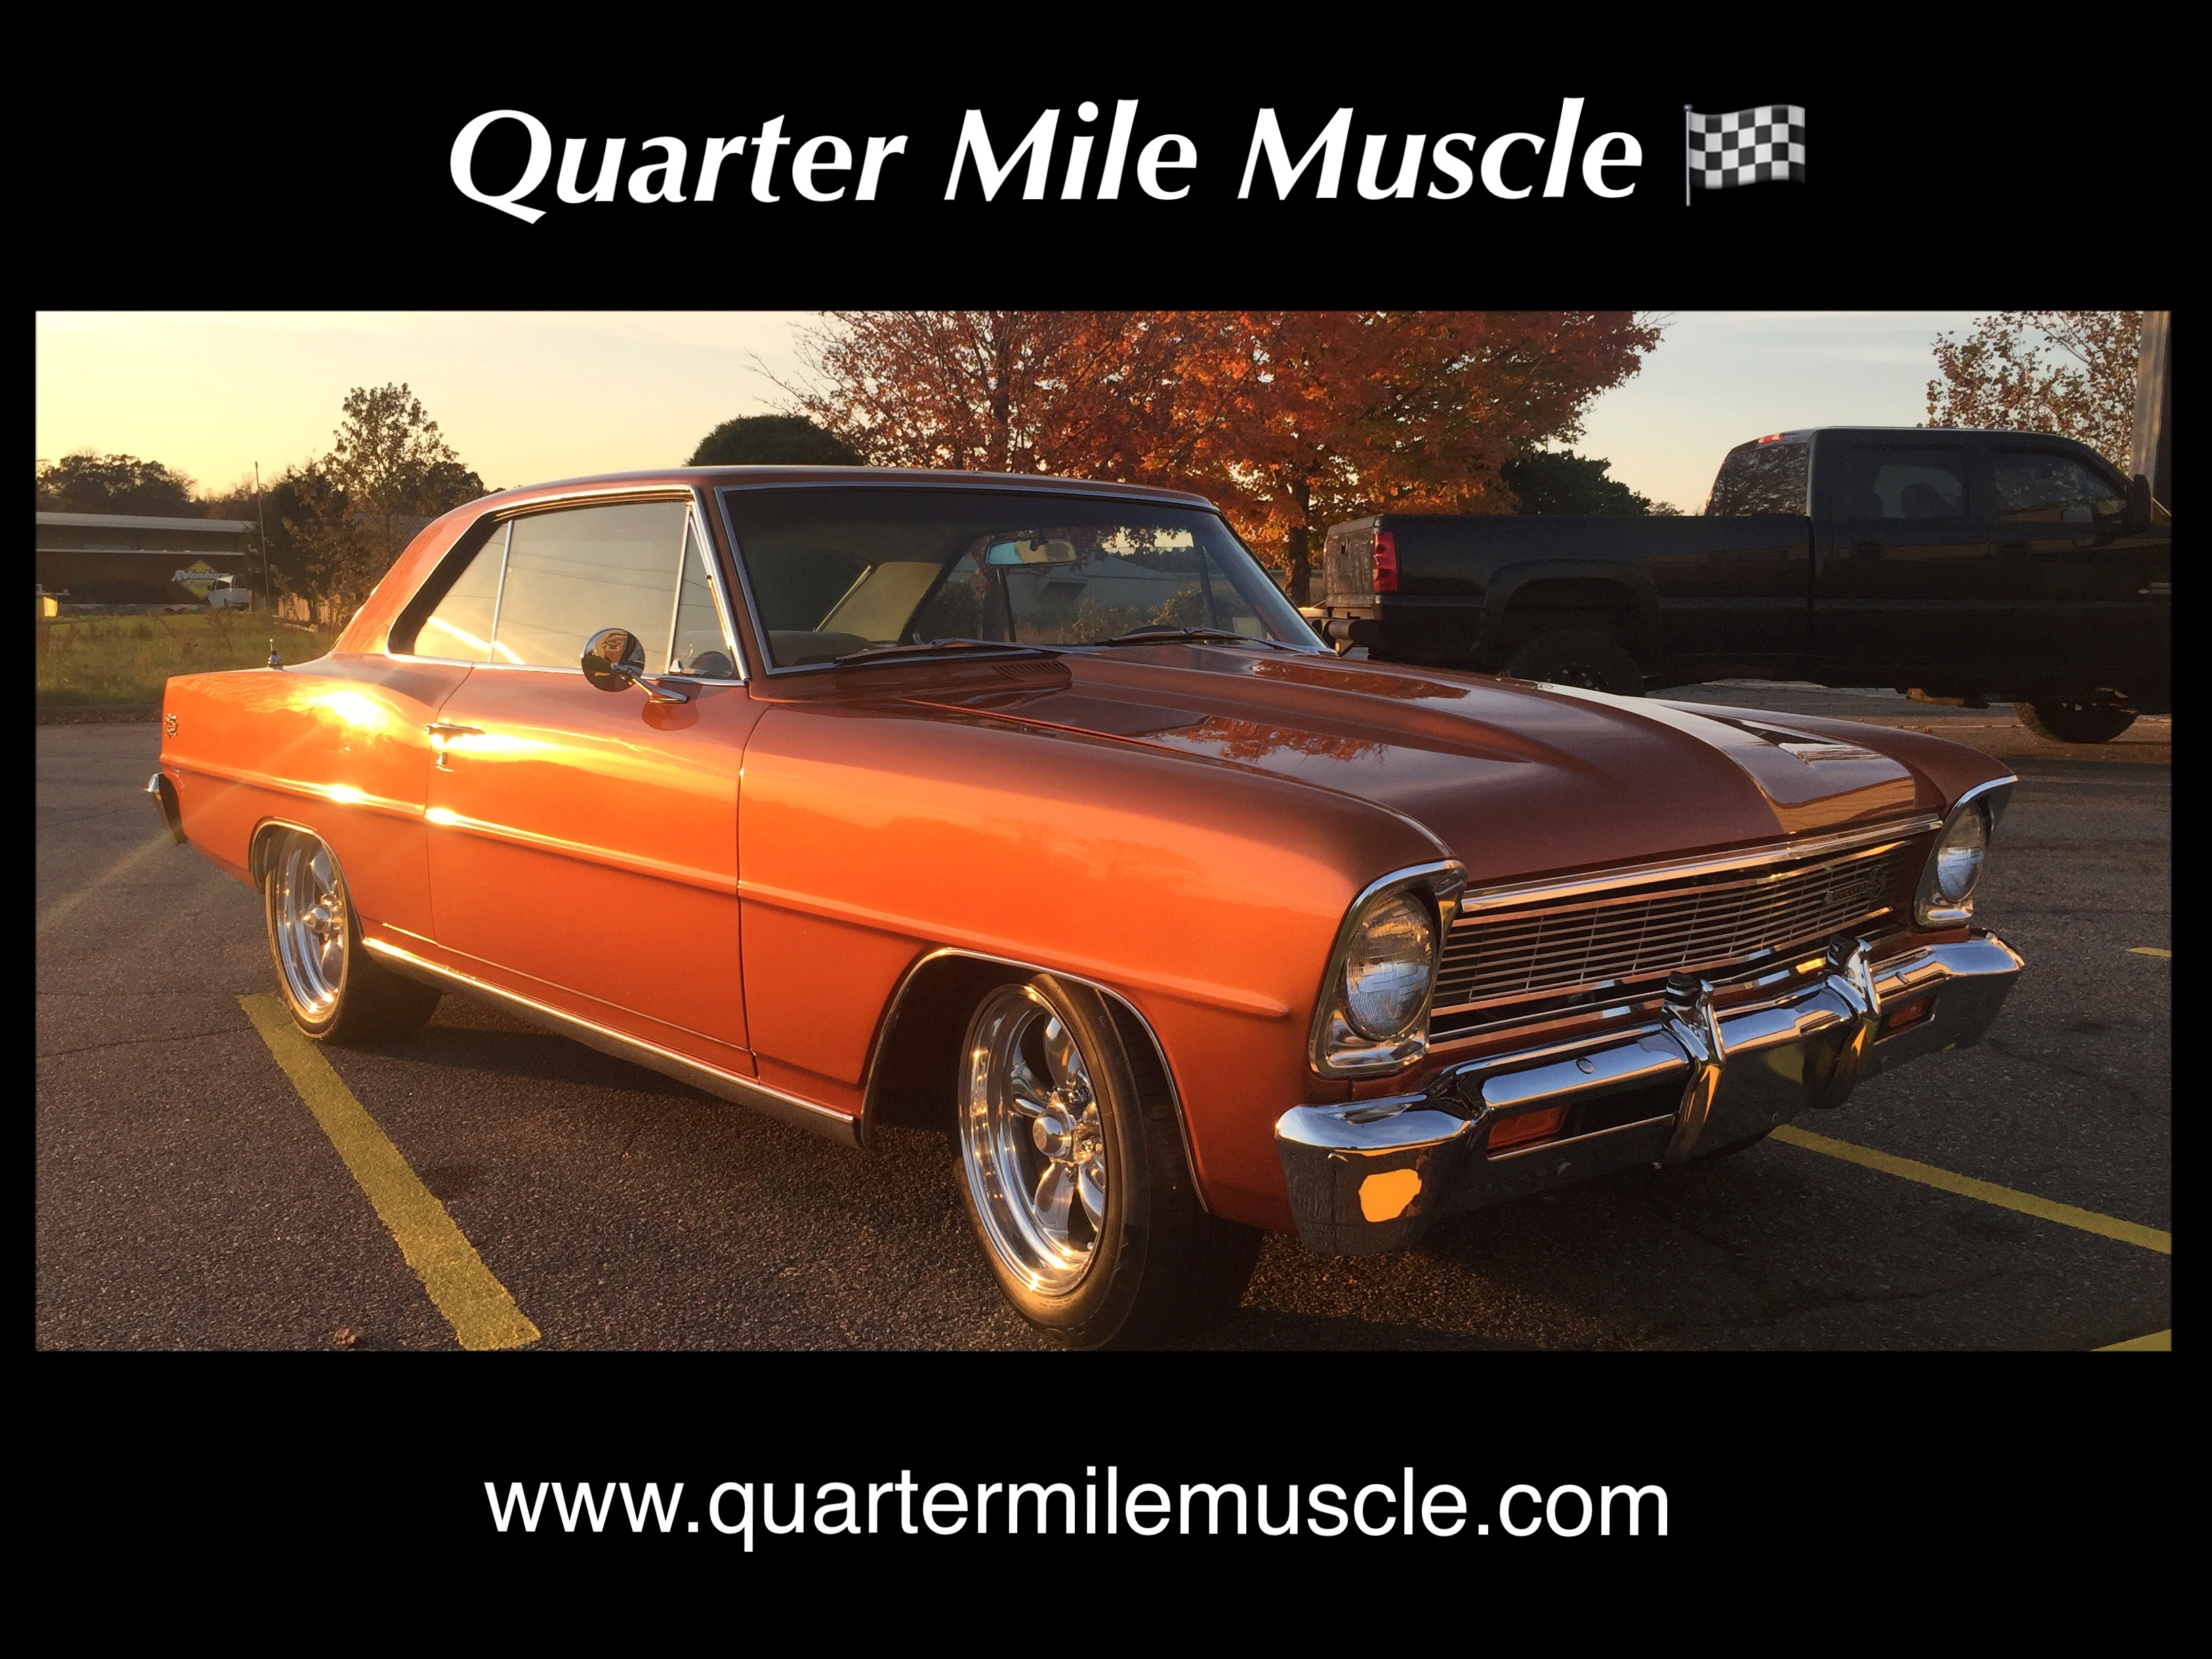 Quarter Mile Muscle Inc. | Quarter Mile Muscle Inc.